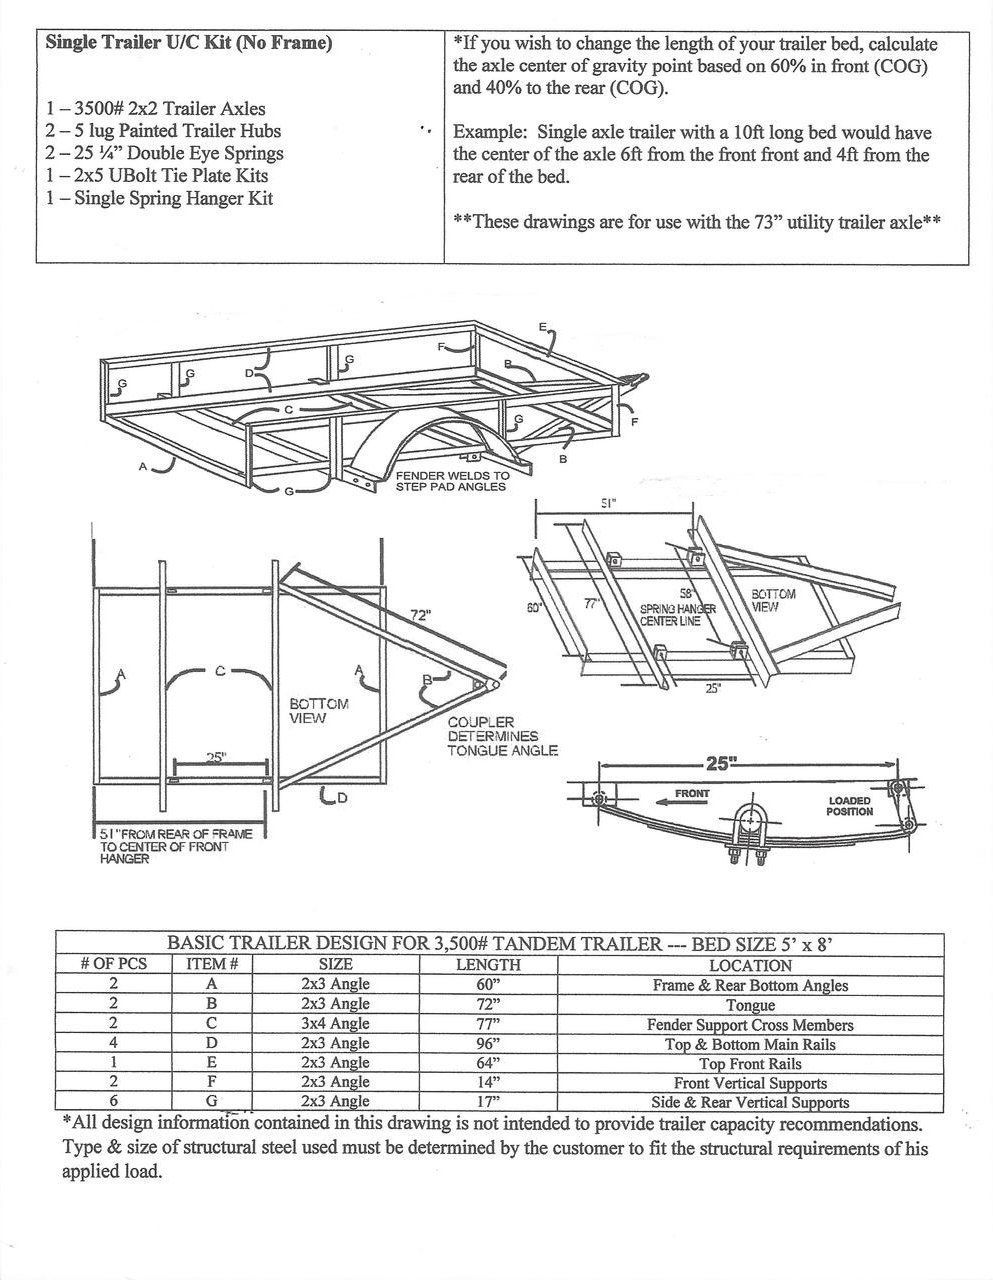 73 single undercarriage trailer kit build your own utility trailer with champion trailers undercarriage kit [ 993 x 1280 Pixel ]